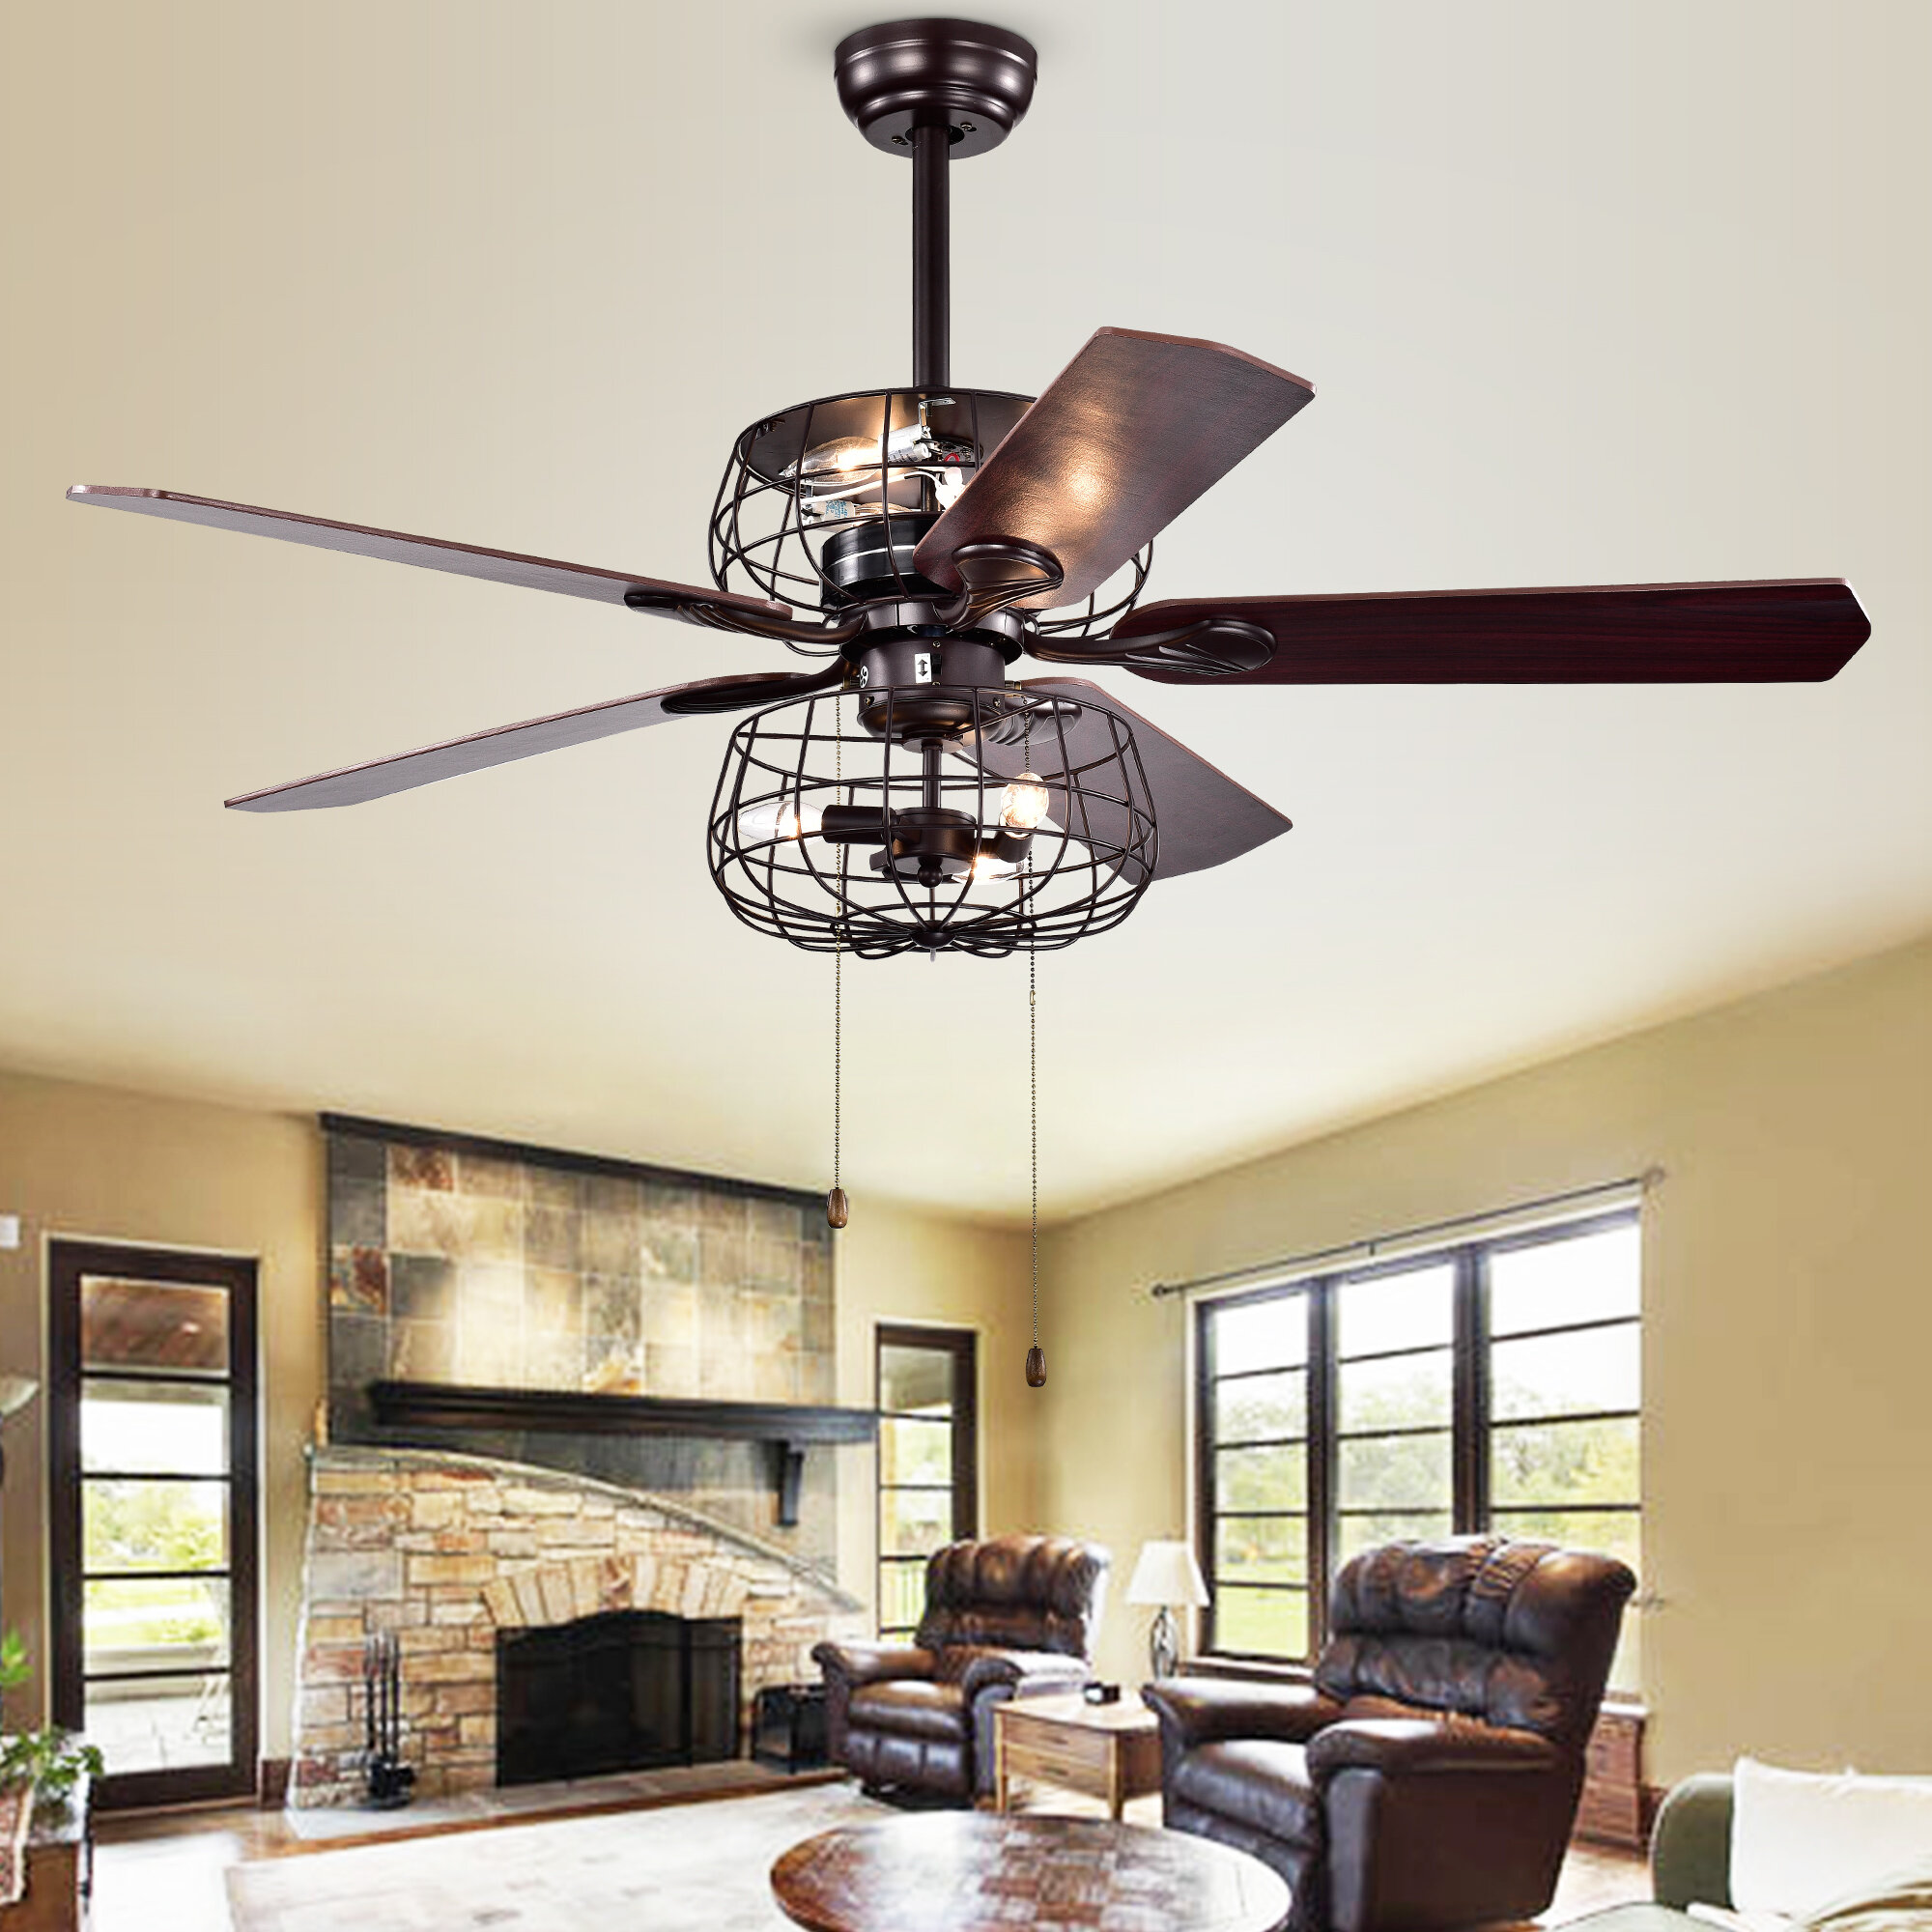 17 Stories Kaiya 5 Blade Ceiling Fan